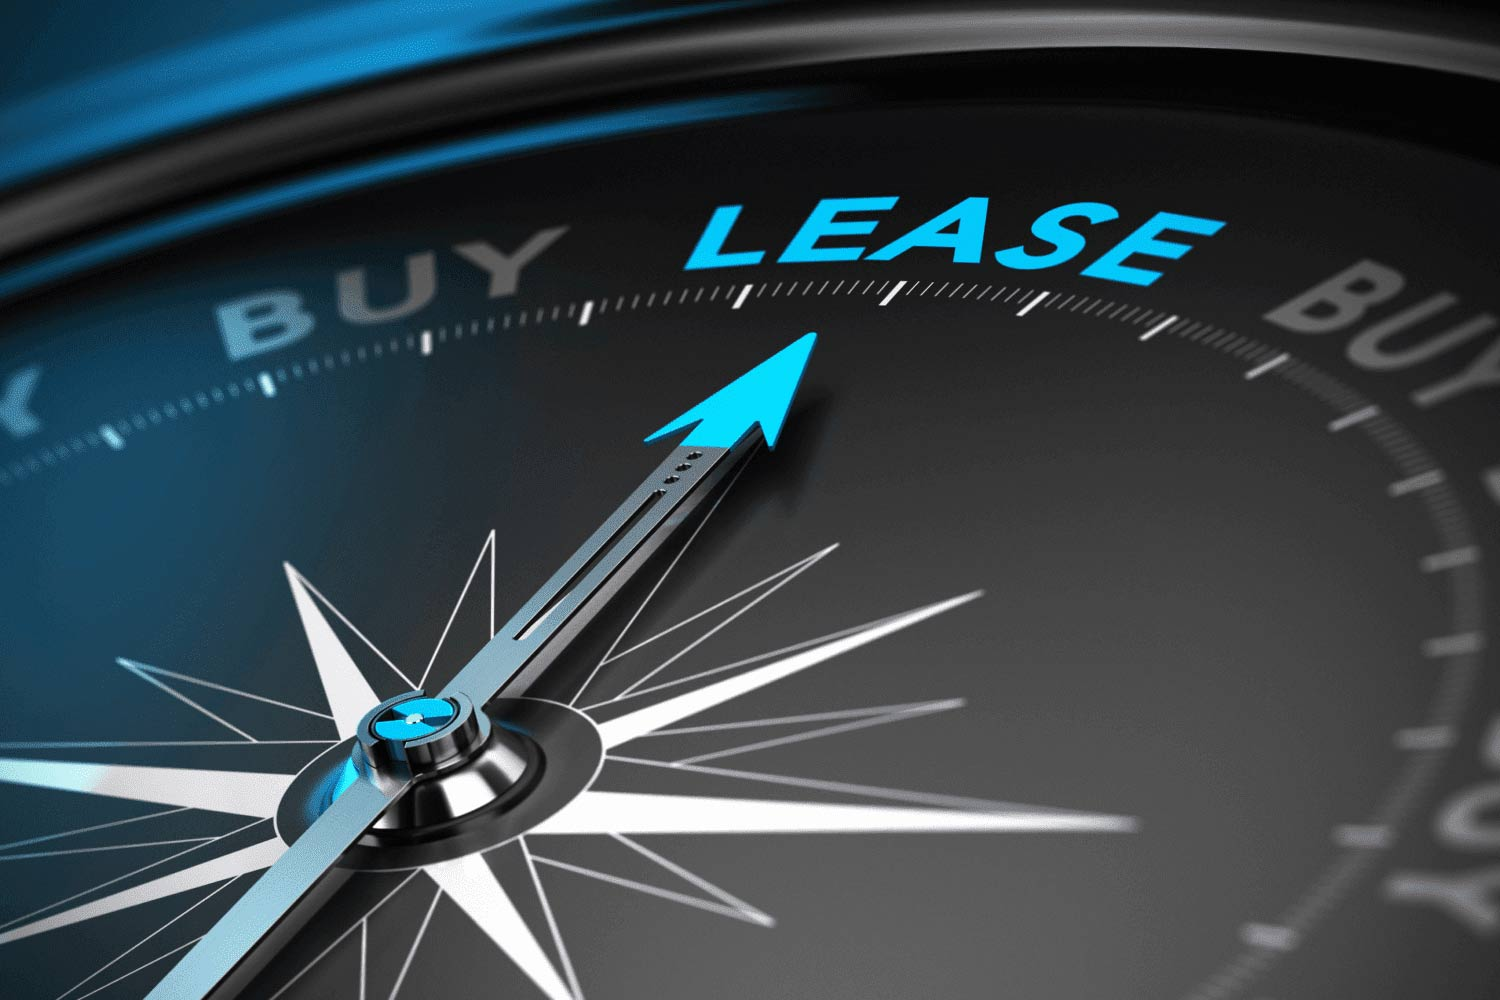 Buy or lease IT equipment